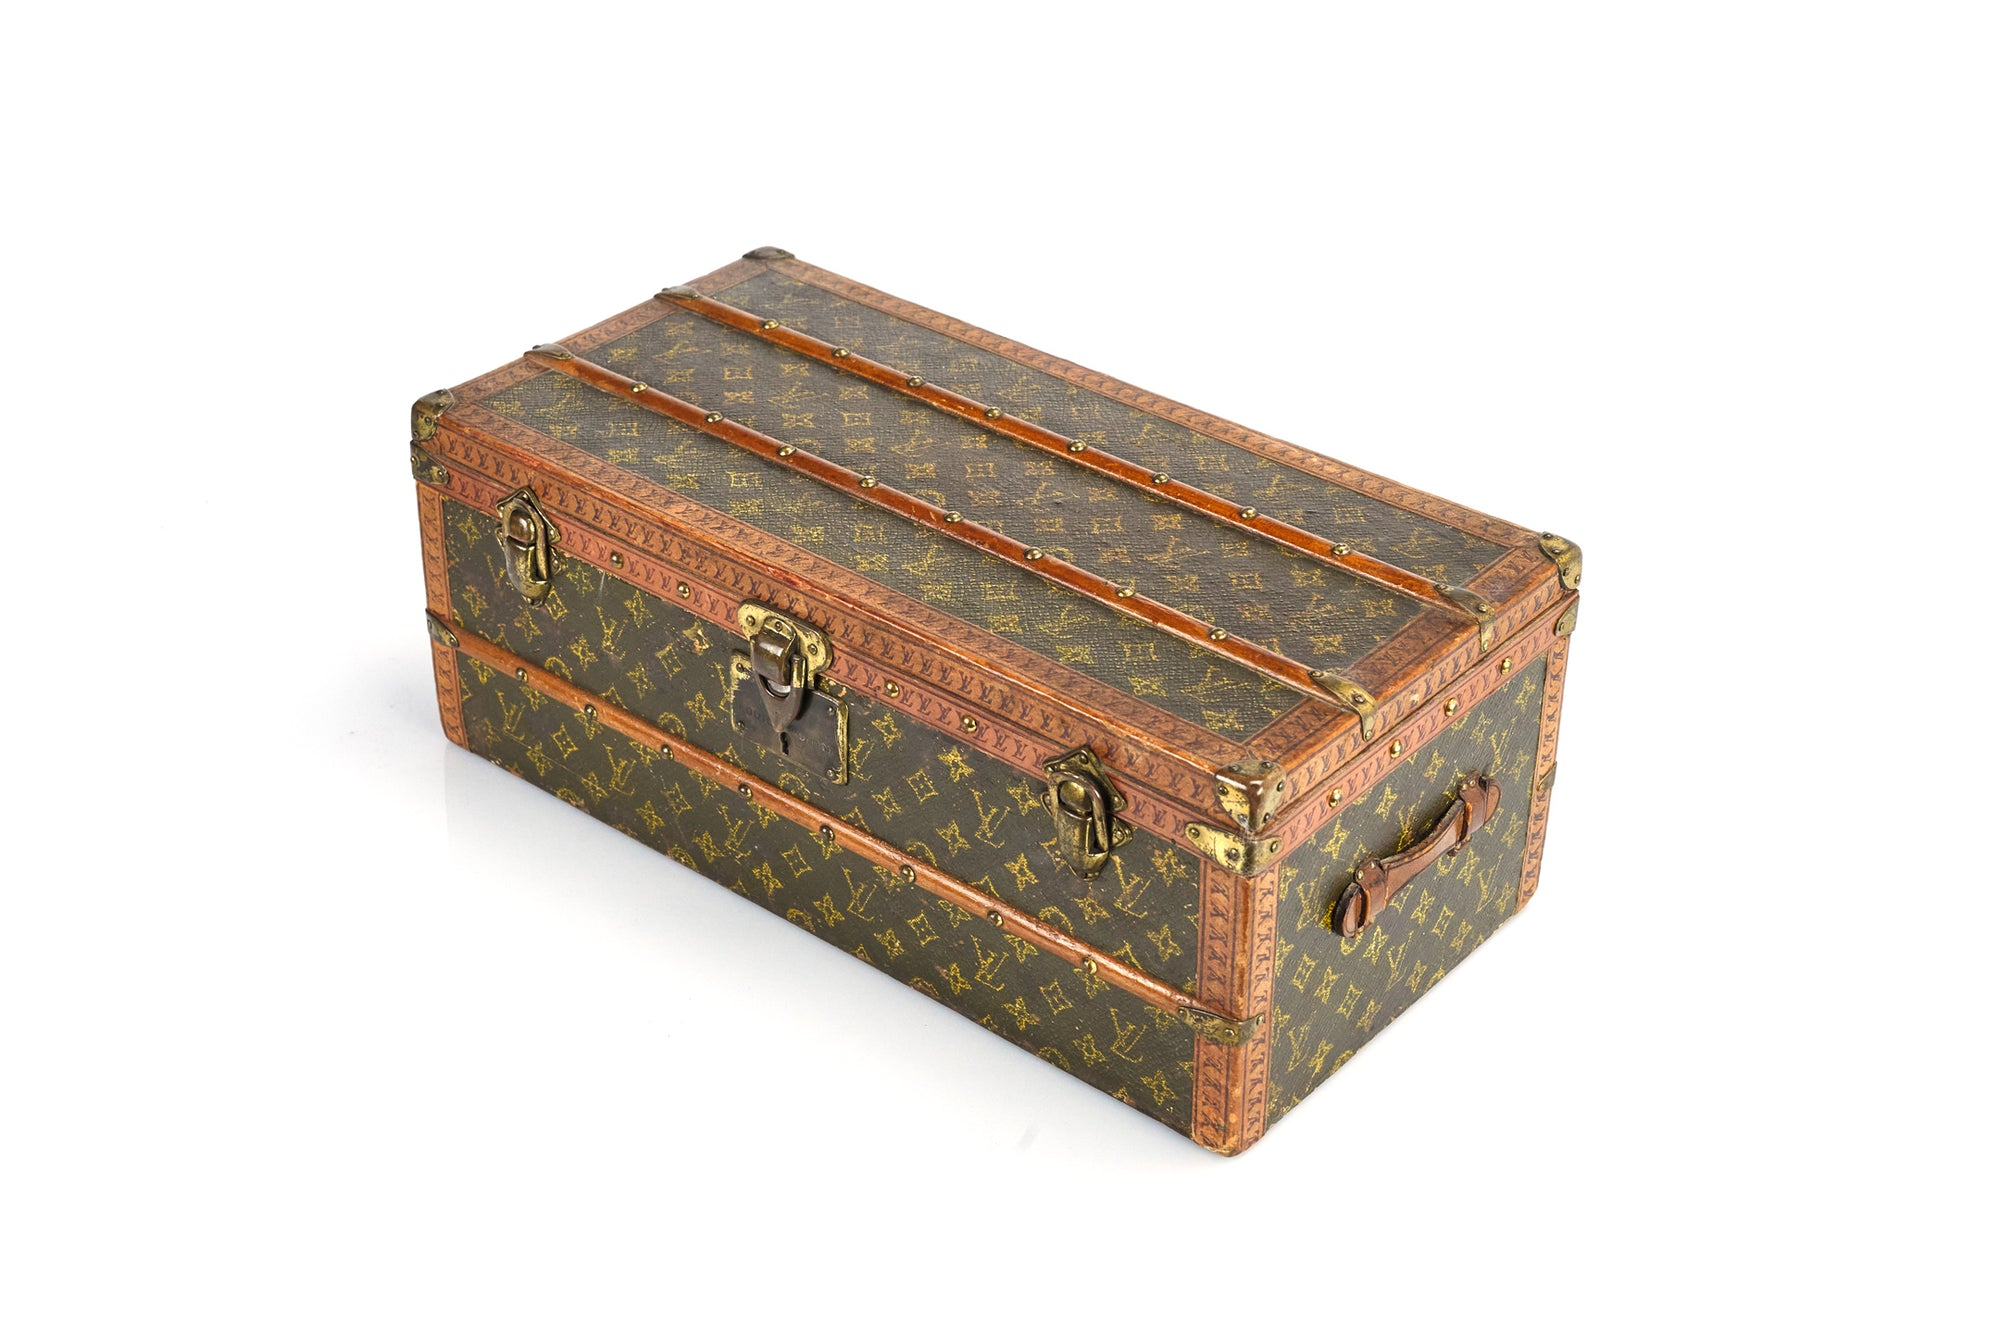 Rare Miniature Louis Vuitton Trunk